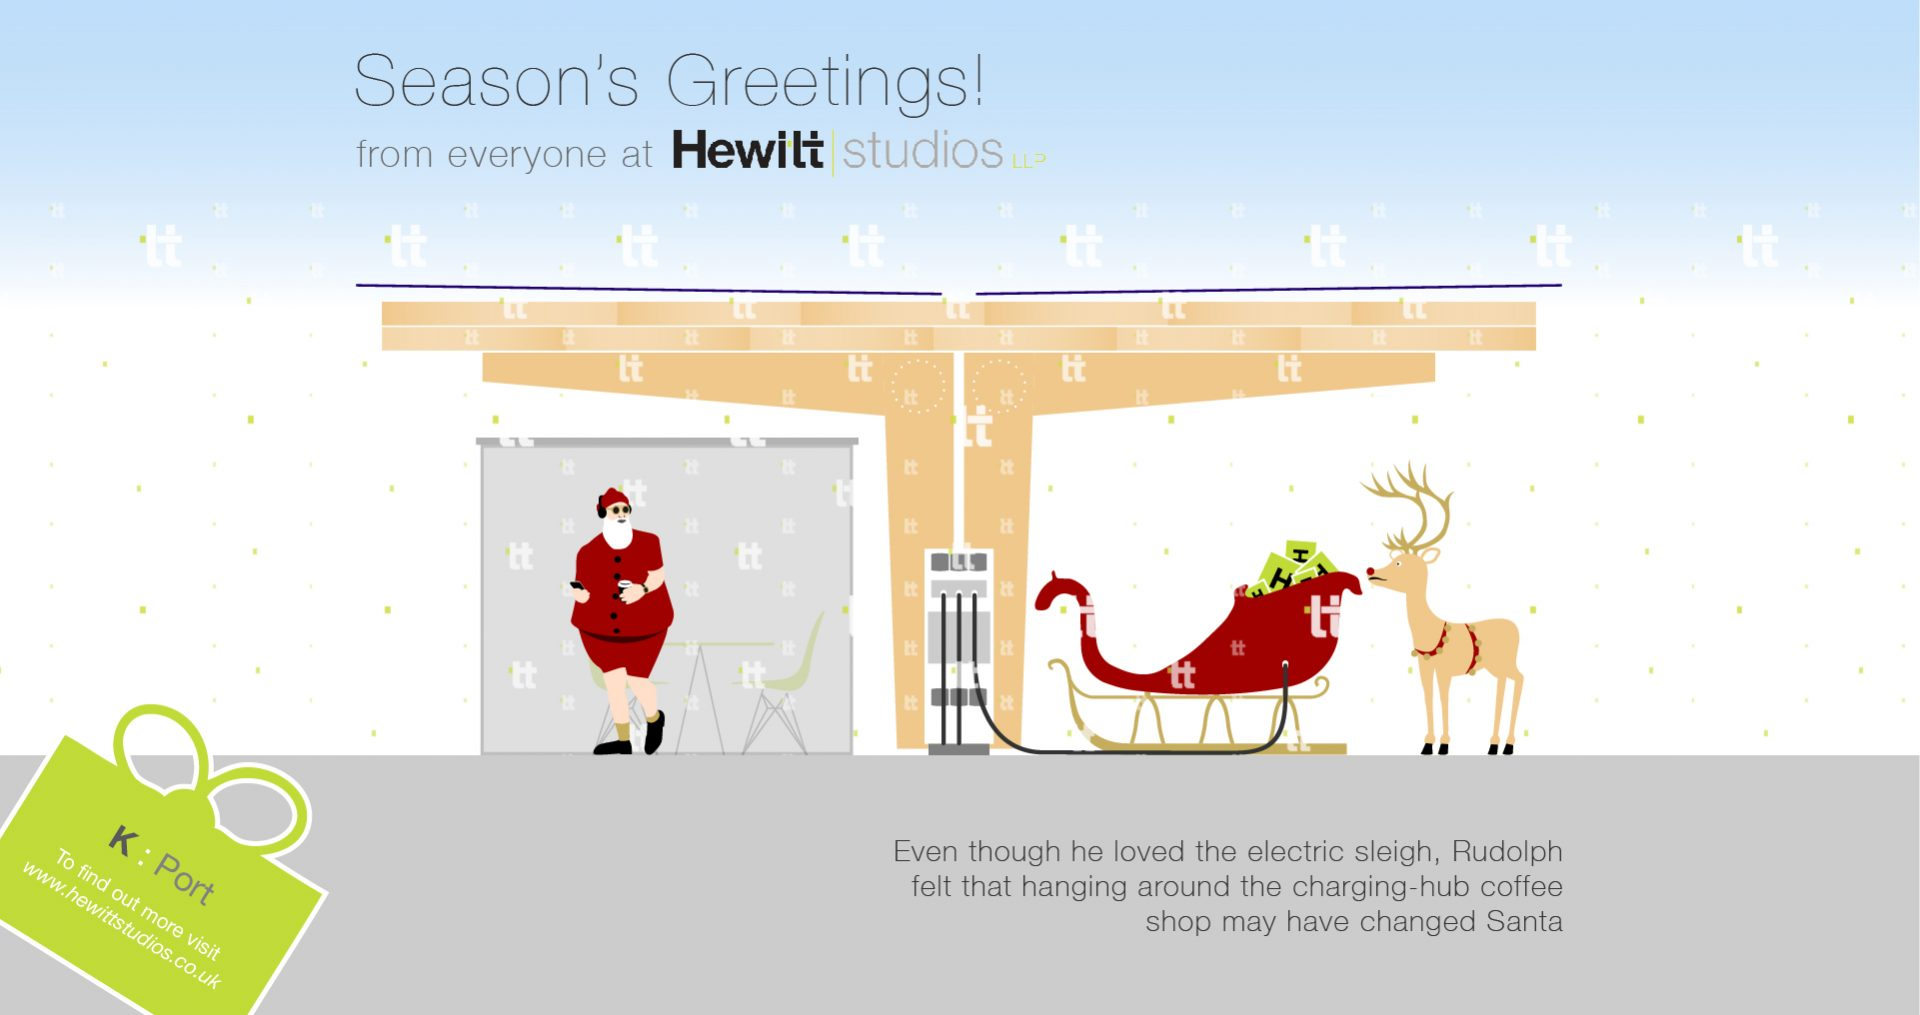 Seasons Greetings Hewitt Studios Hipster Santa Xmas